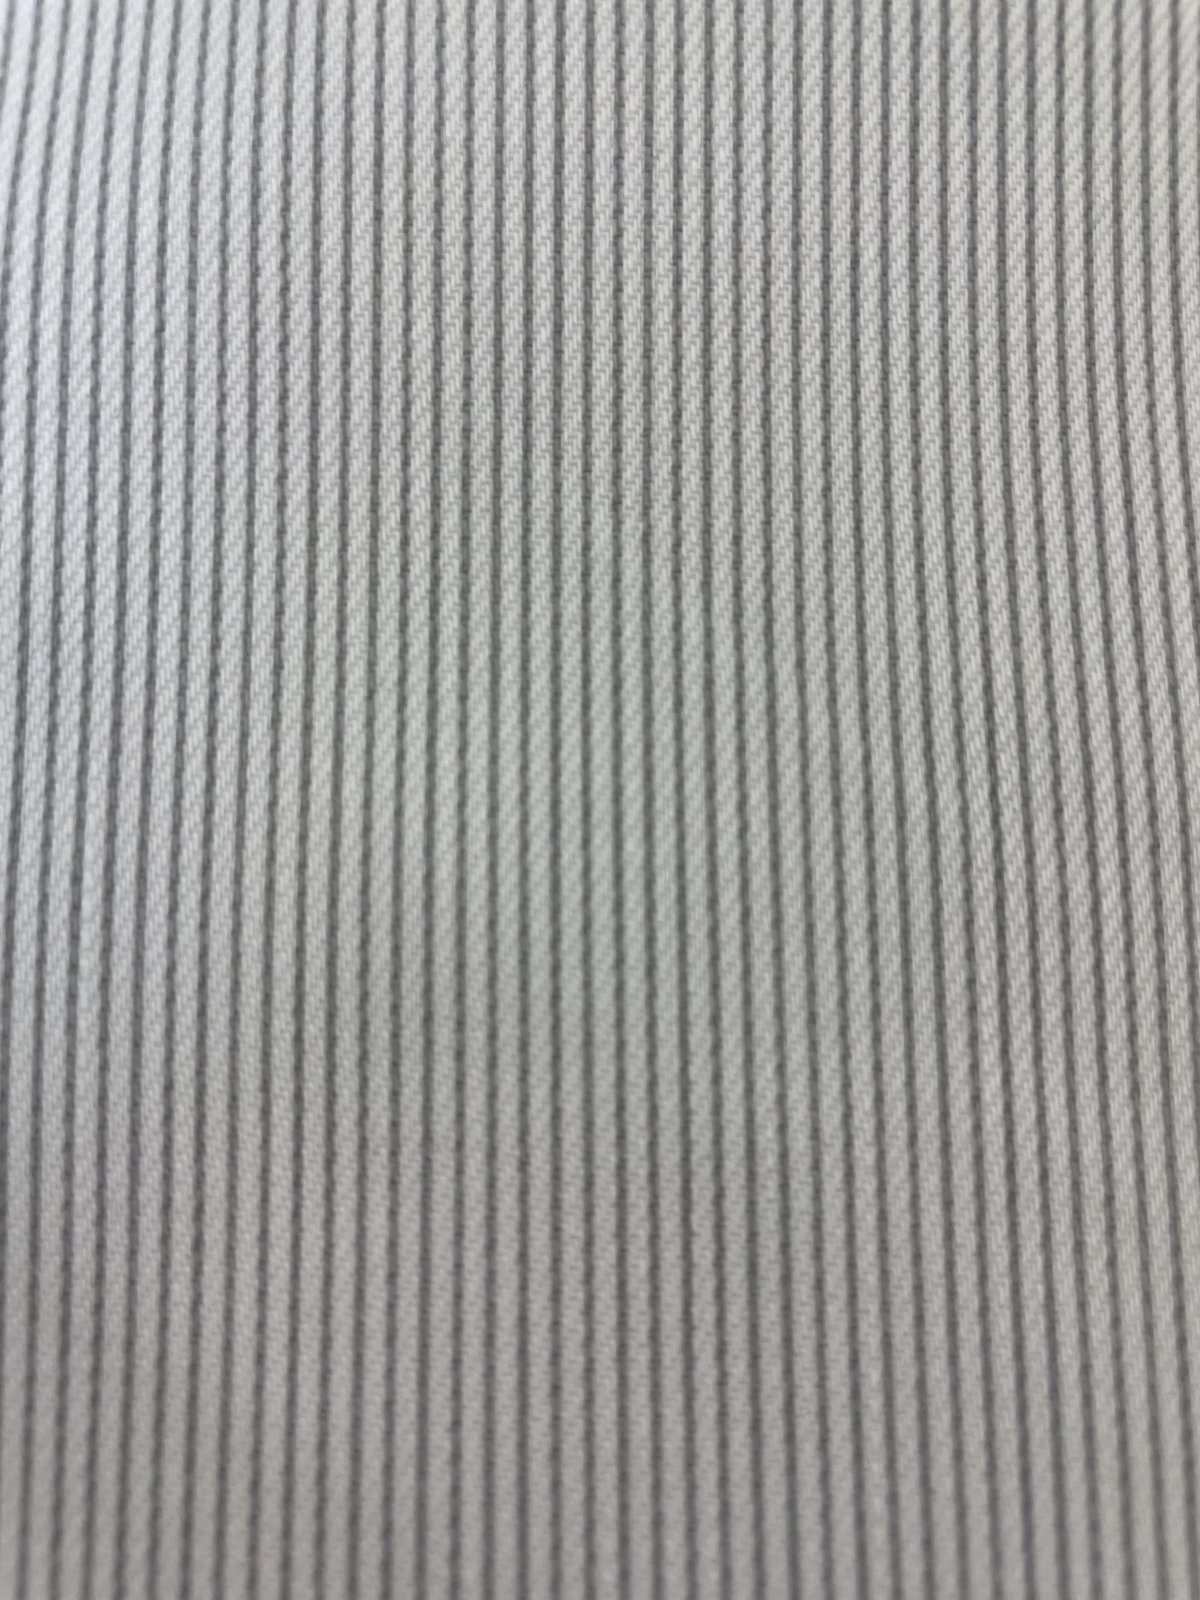 Pin Stripes gray and white cotton with spandex